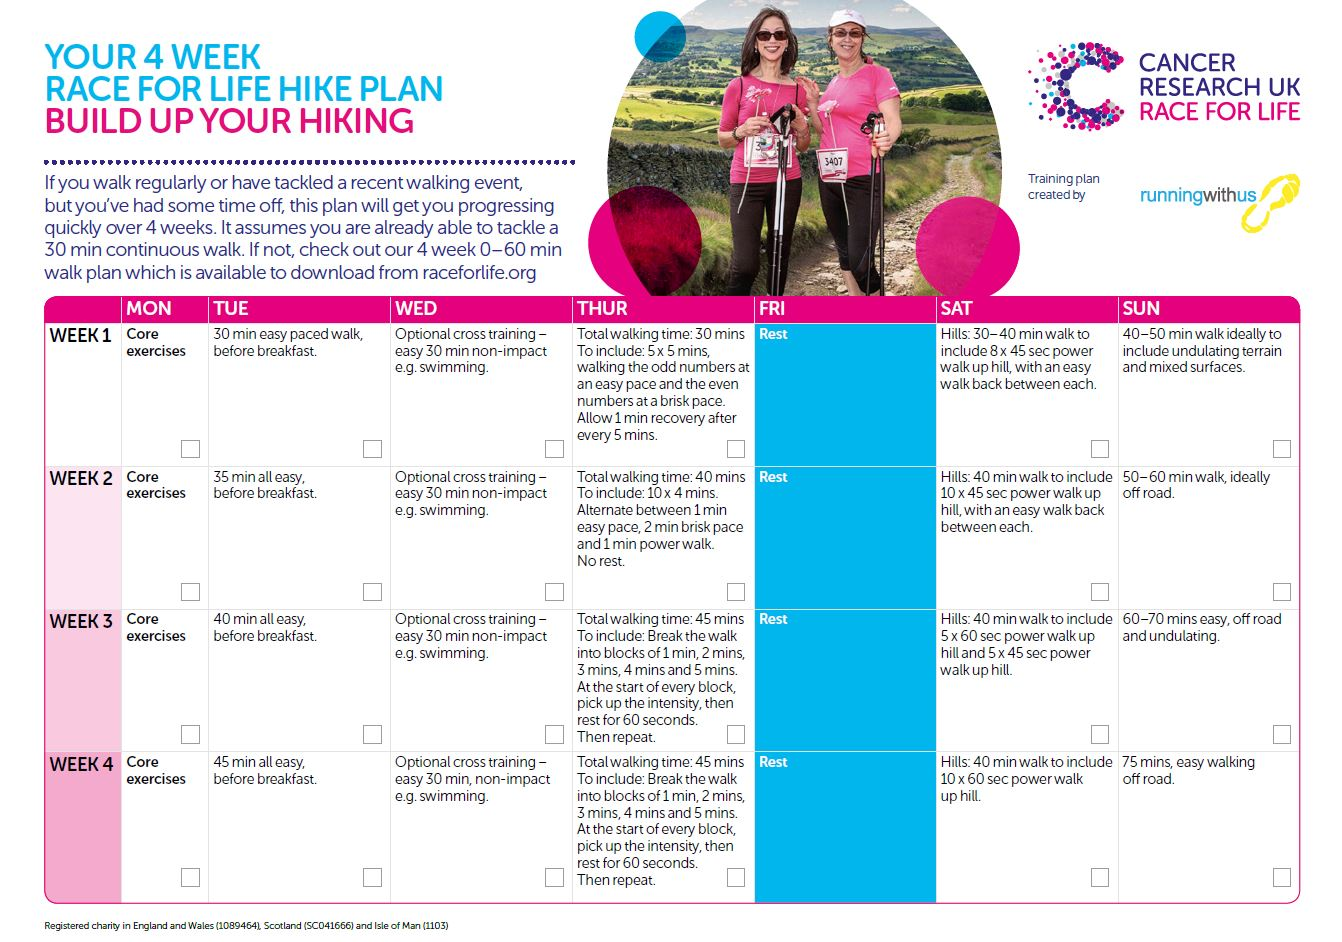 Race for Life Hike - Build up your hiking